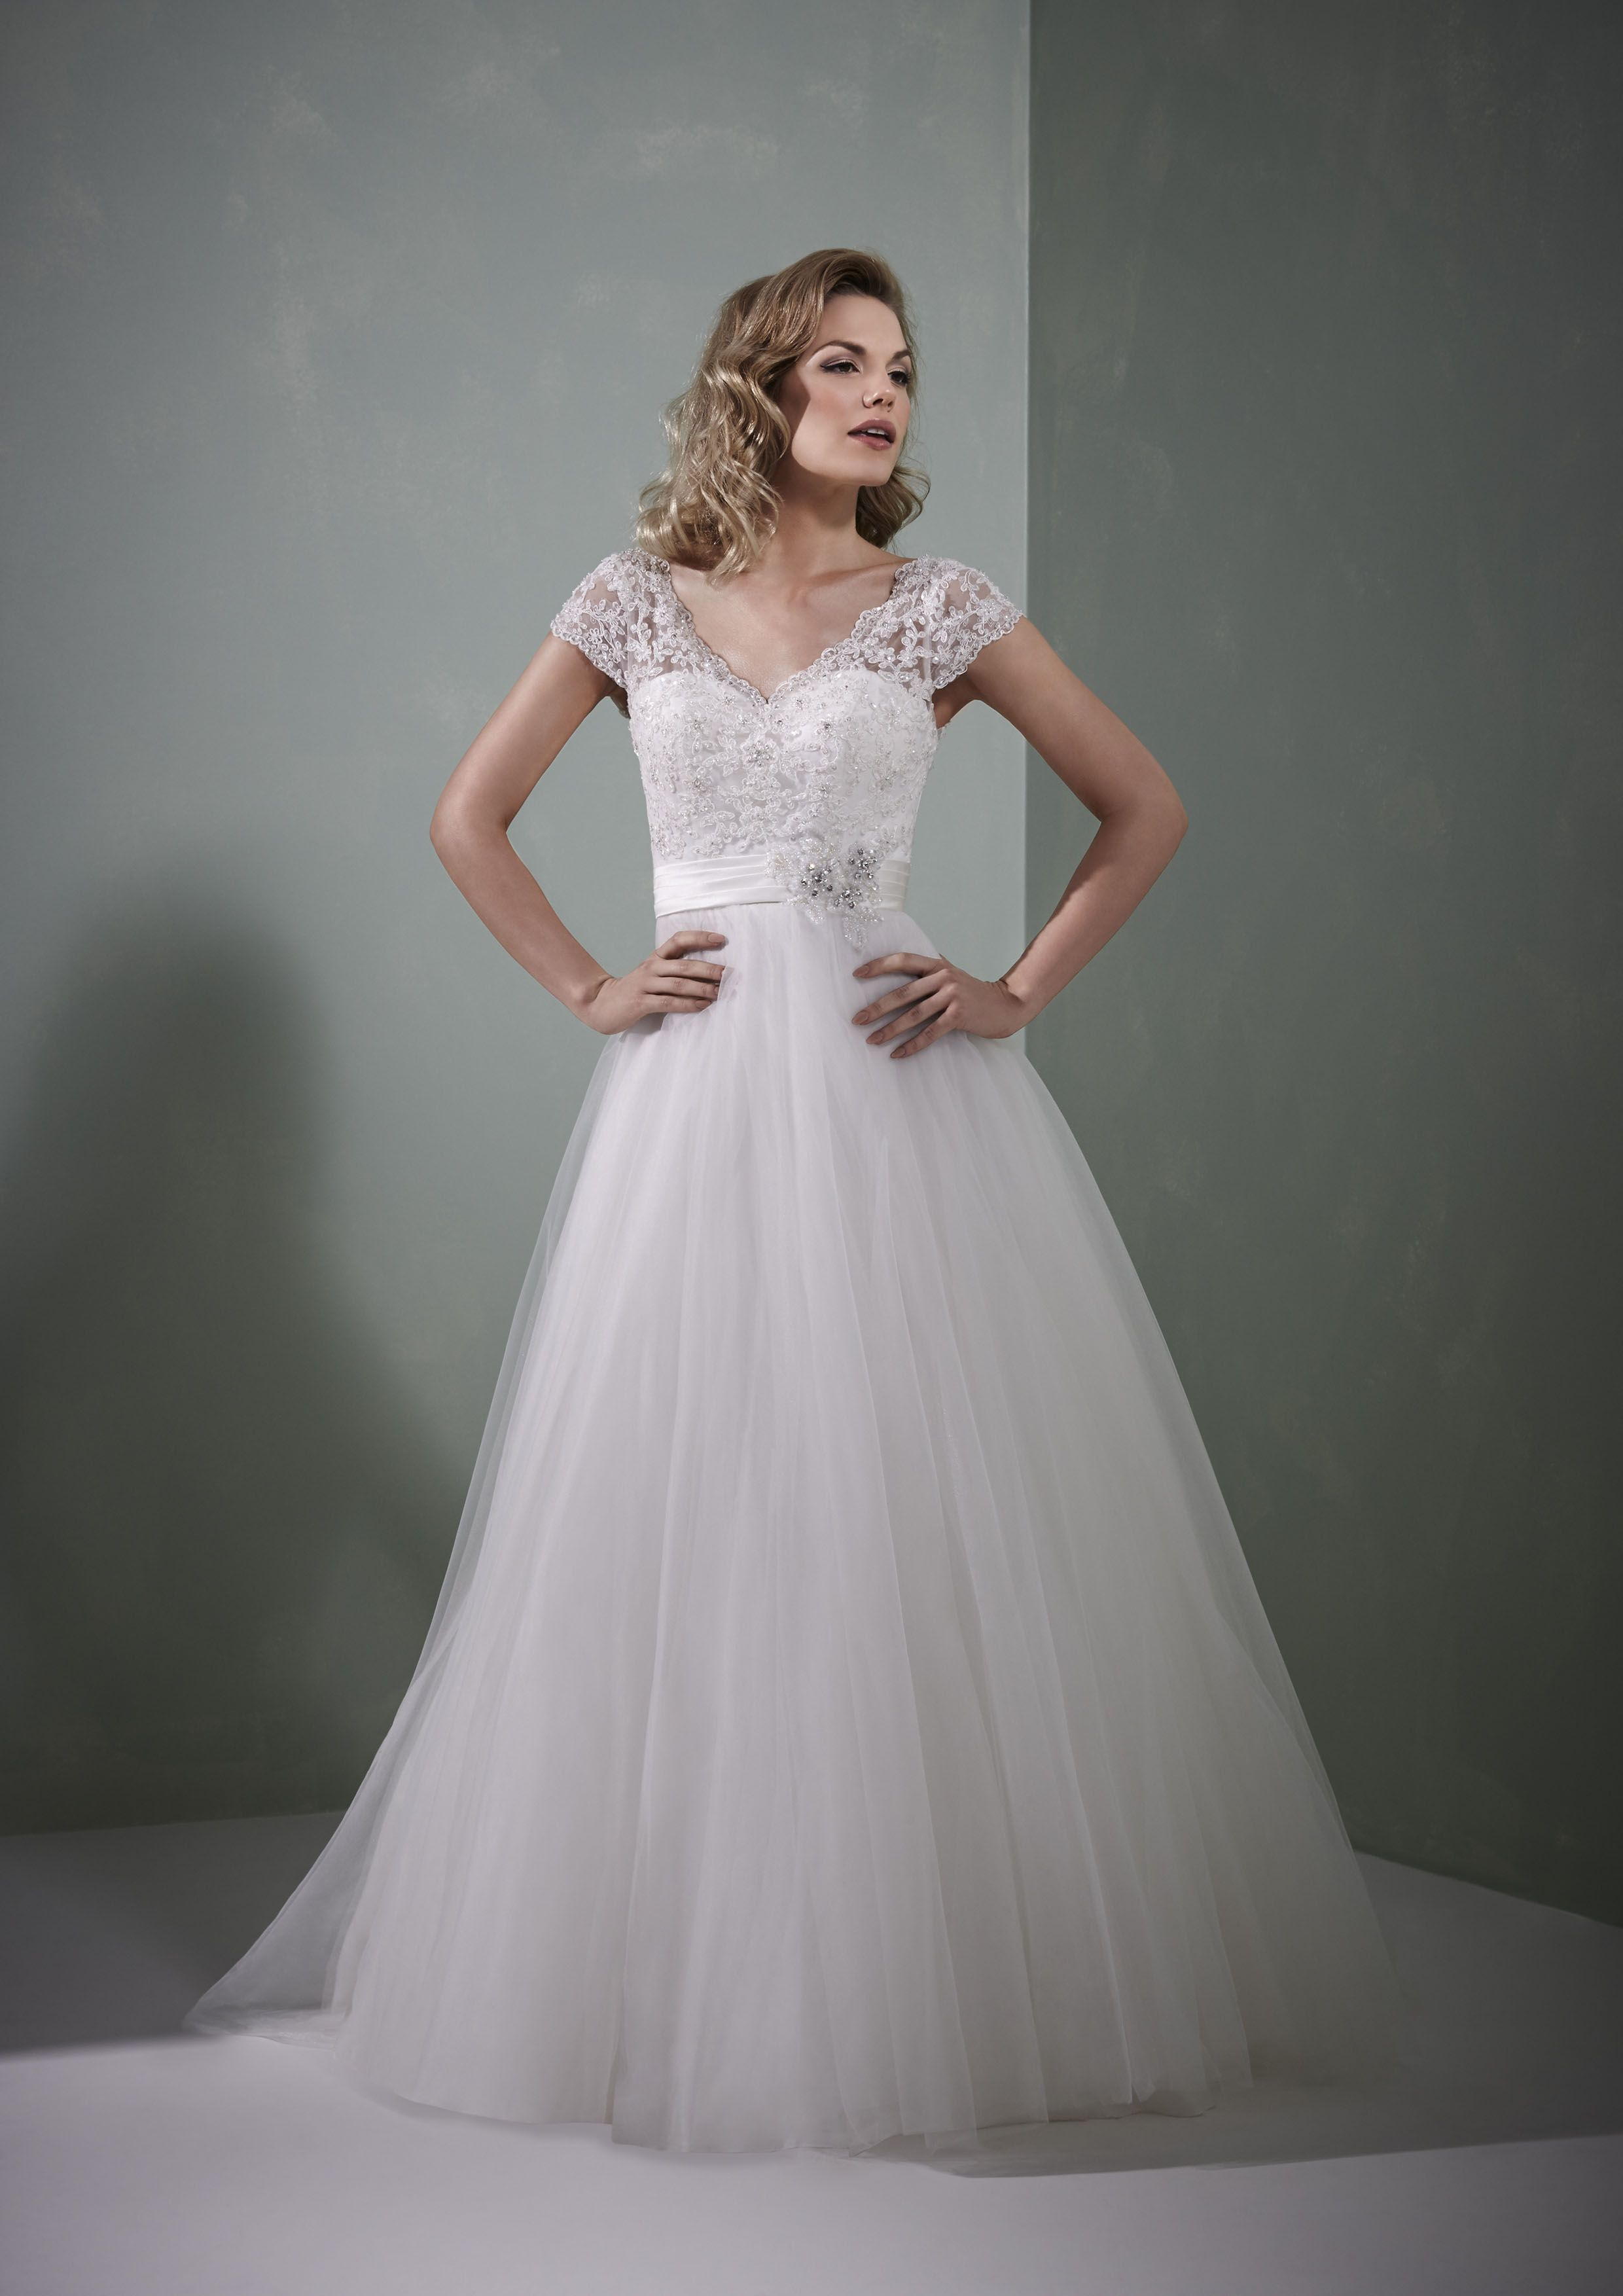 Timeless...Princess Wedding Dress from Finesse Bridal Wear in ...